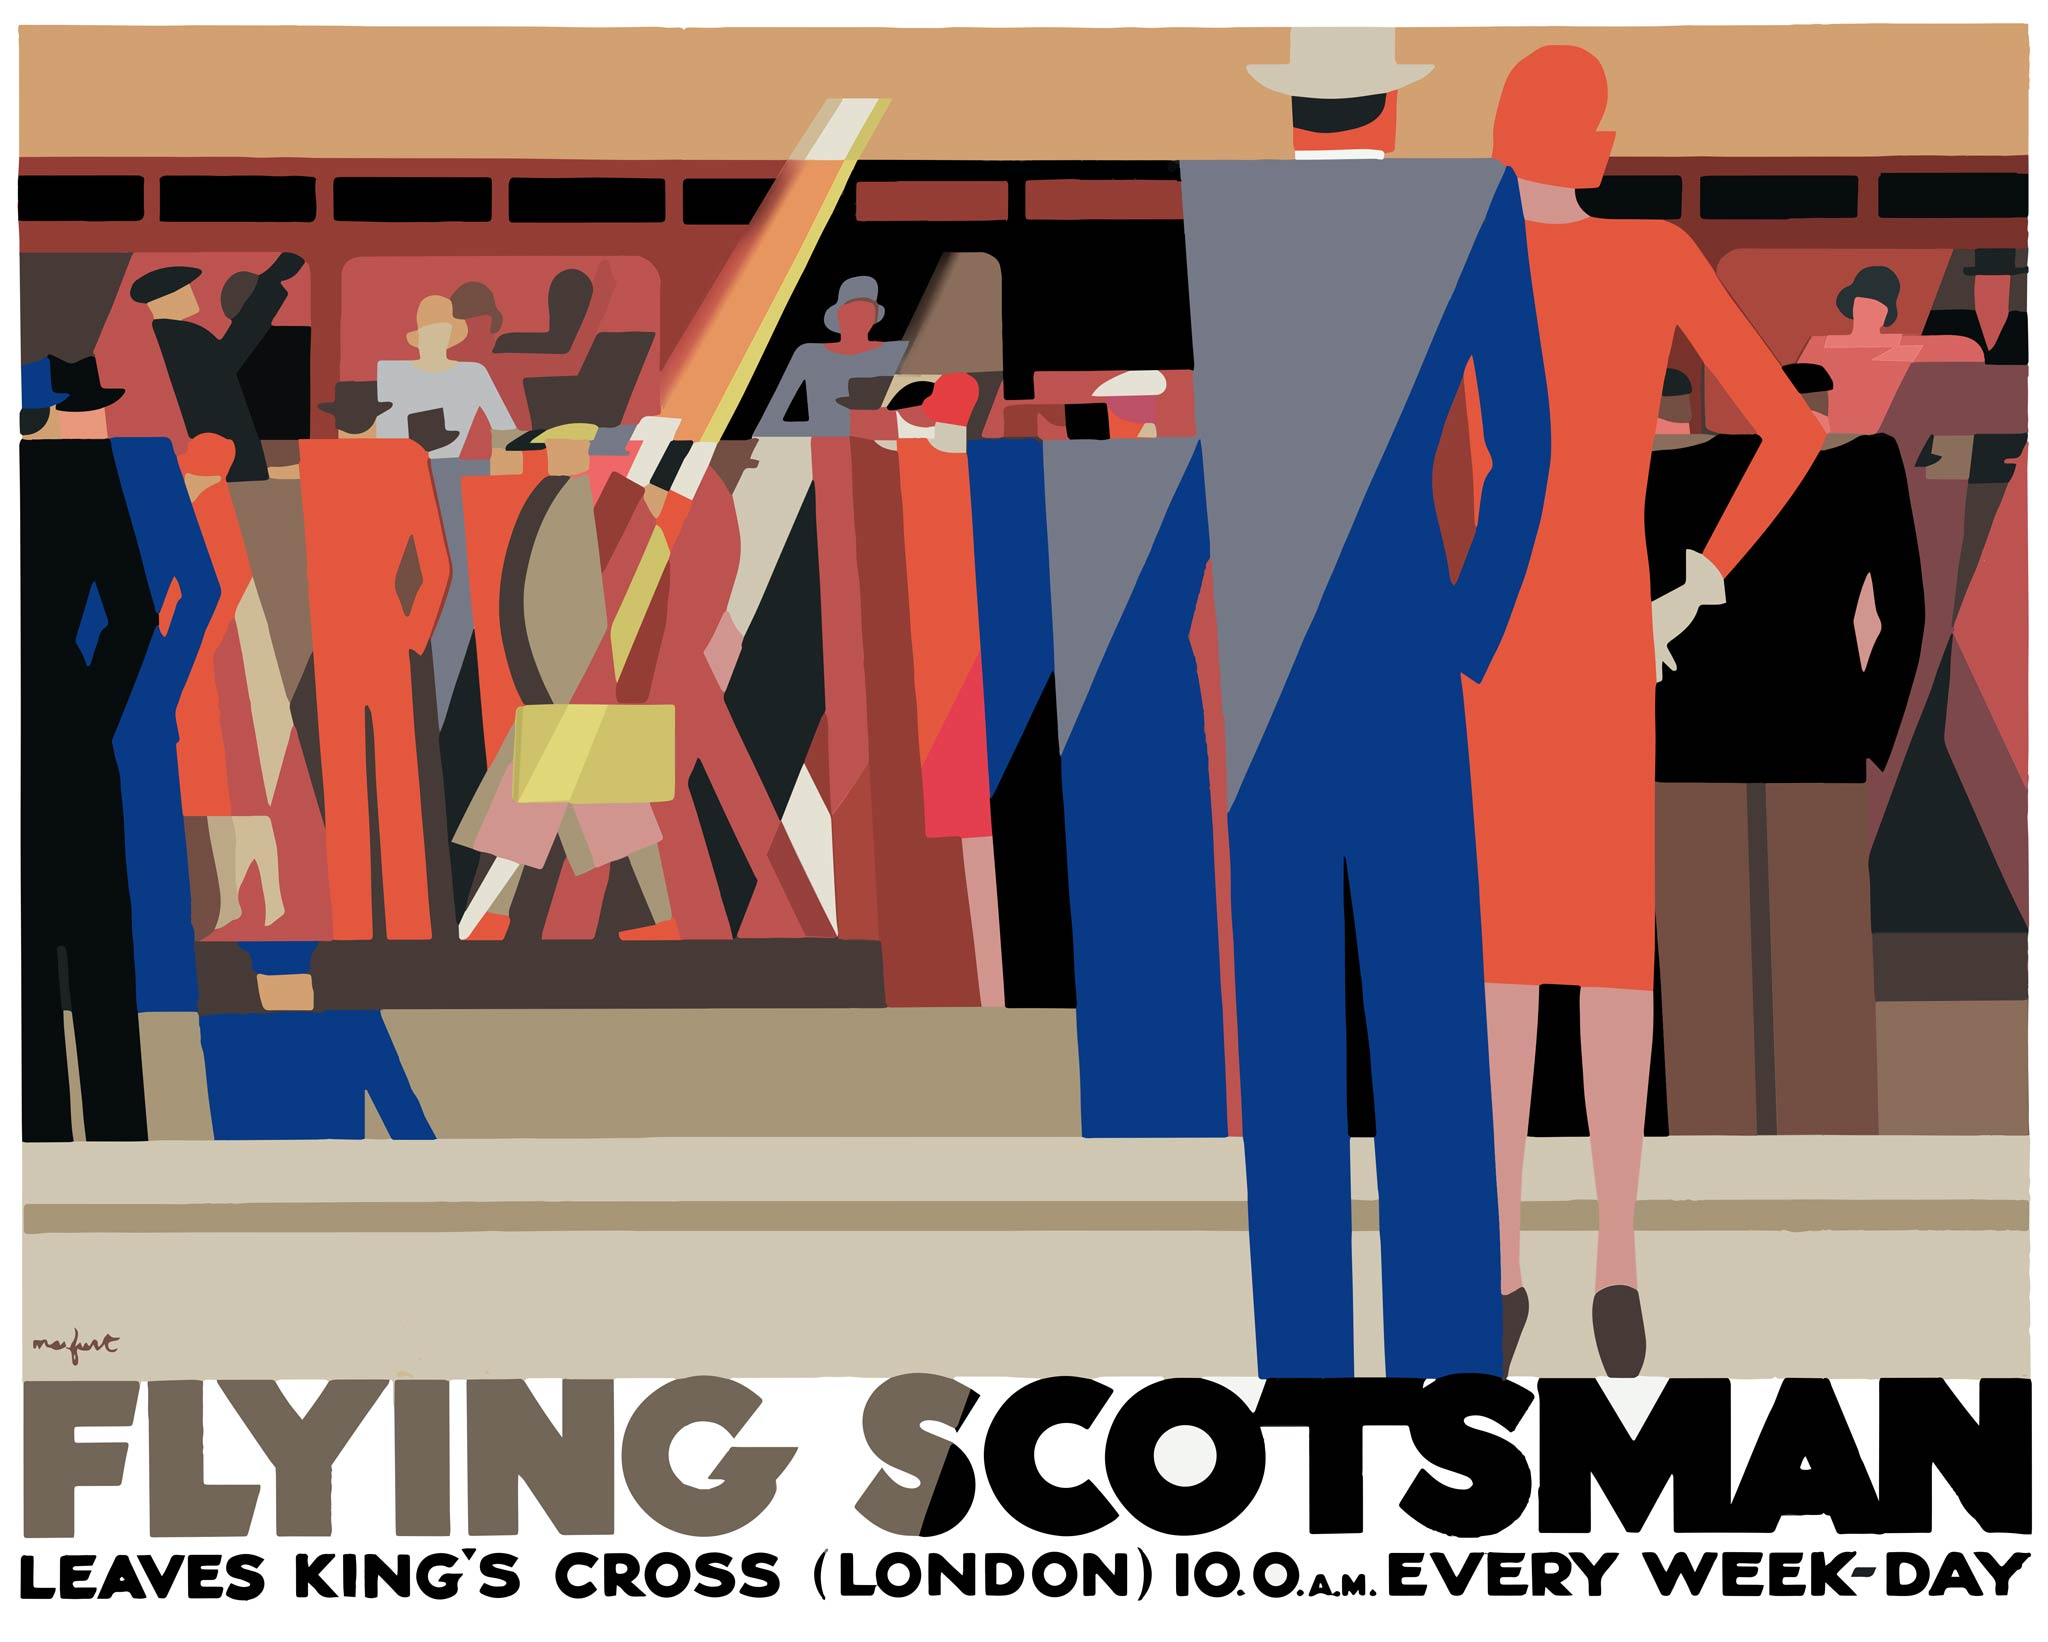 lithographic image of art deco silhouettes of passengers boarding a train